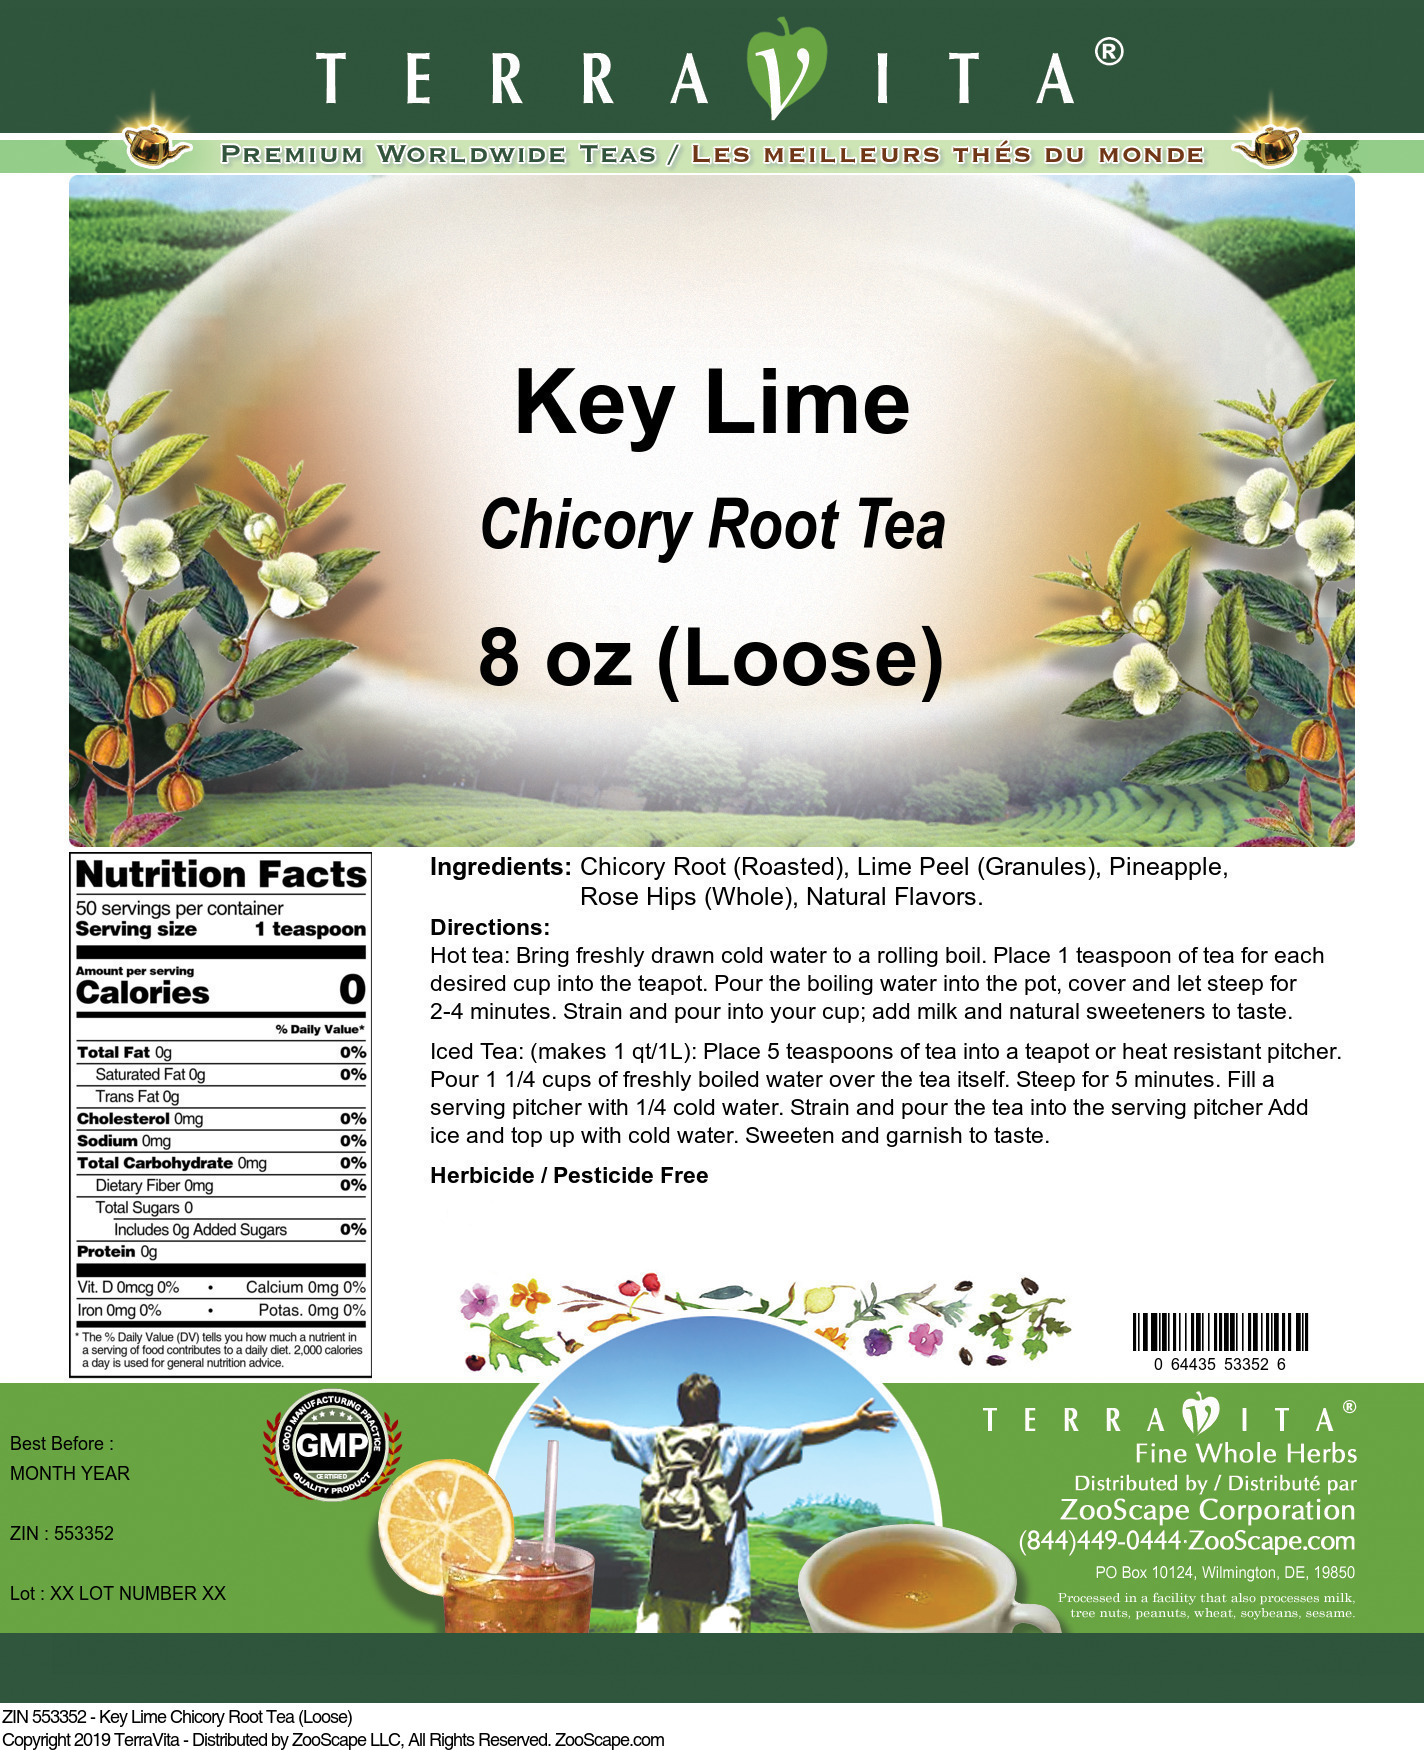 Key Lime Chicory Root